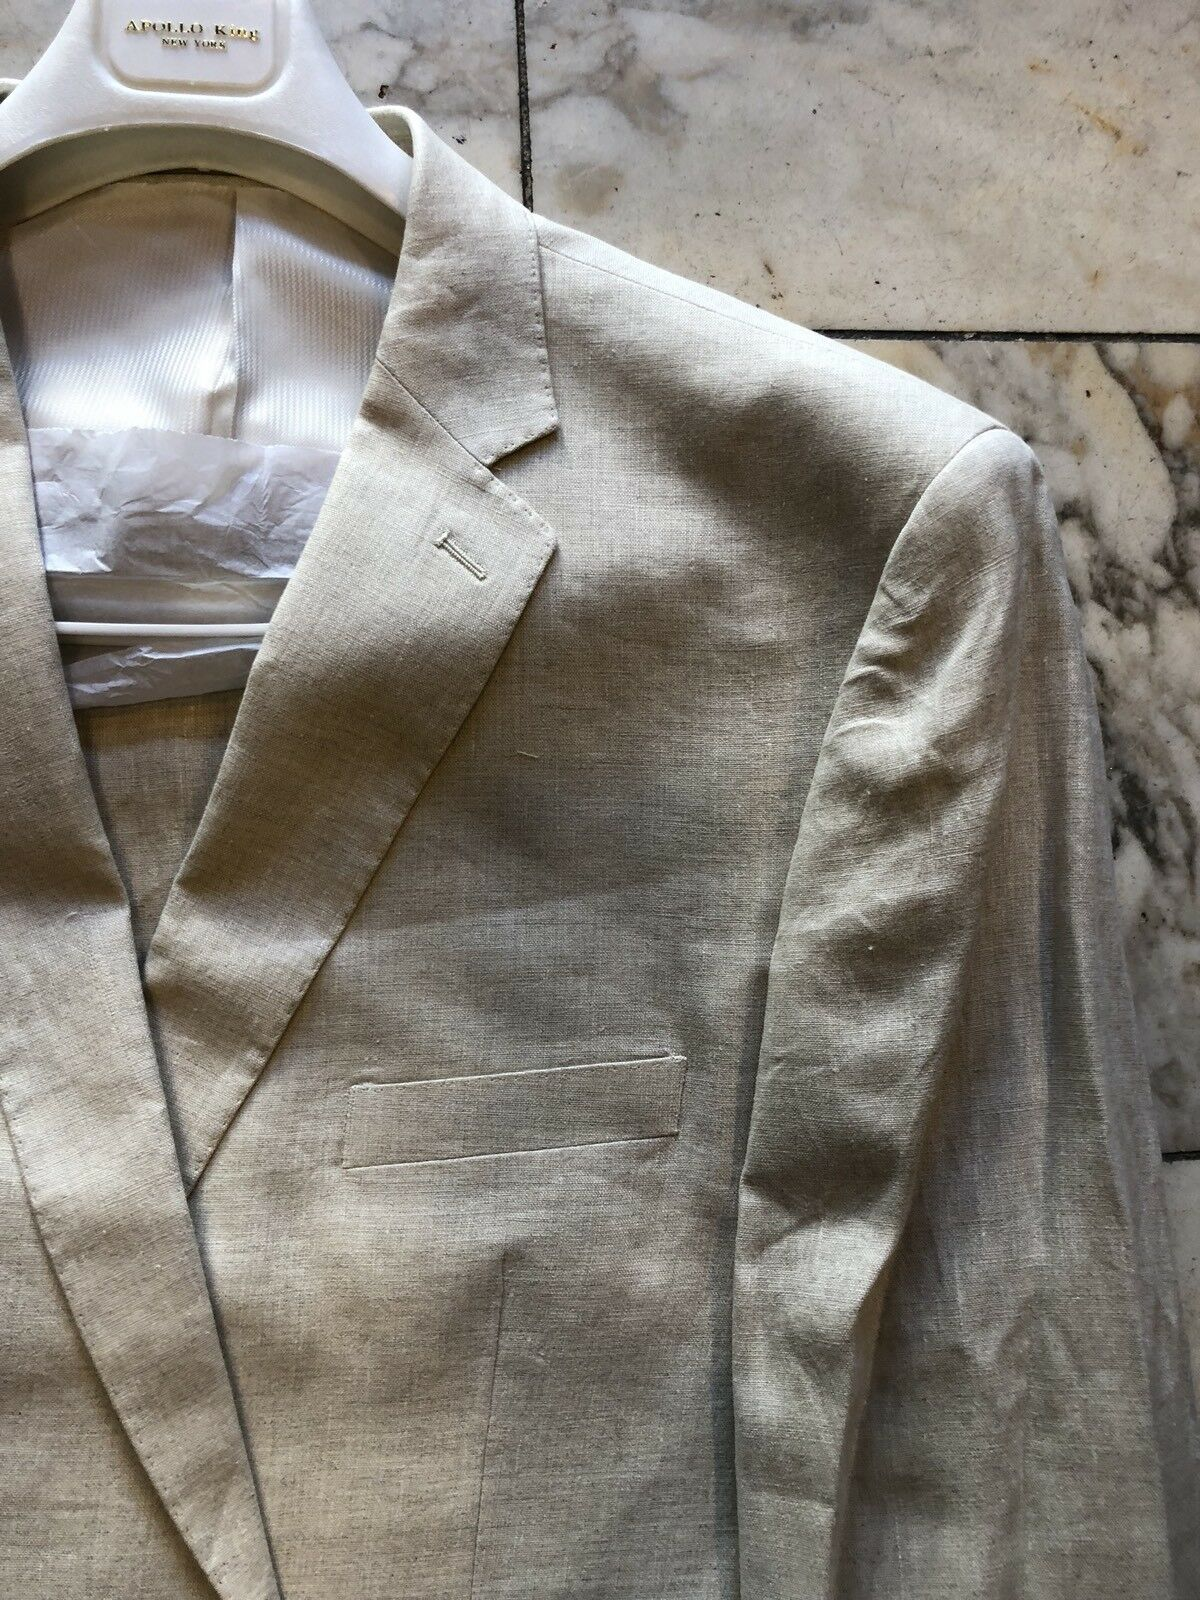 NWT APOLLO KING Classic Fit Men's 100% Linen Suit Lined Tan color 2BT Size 46R